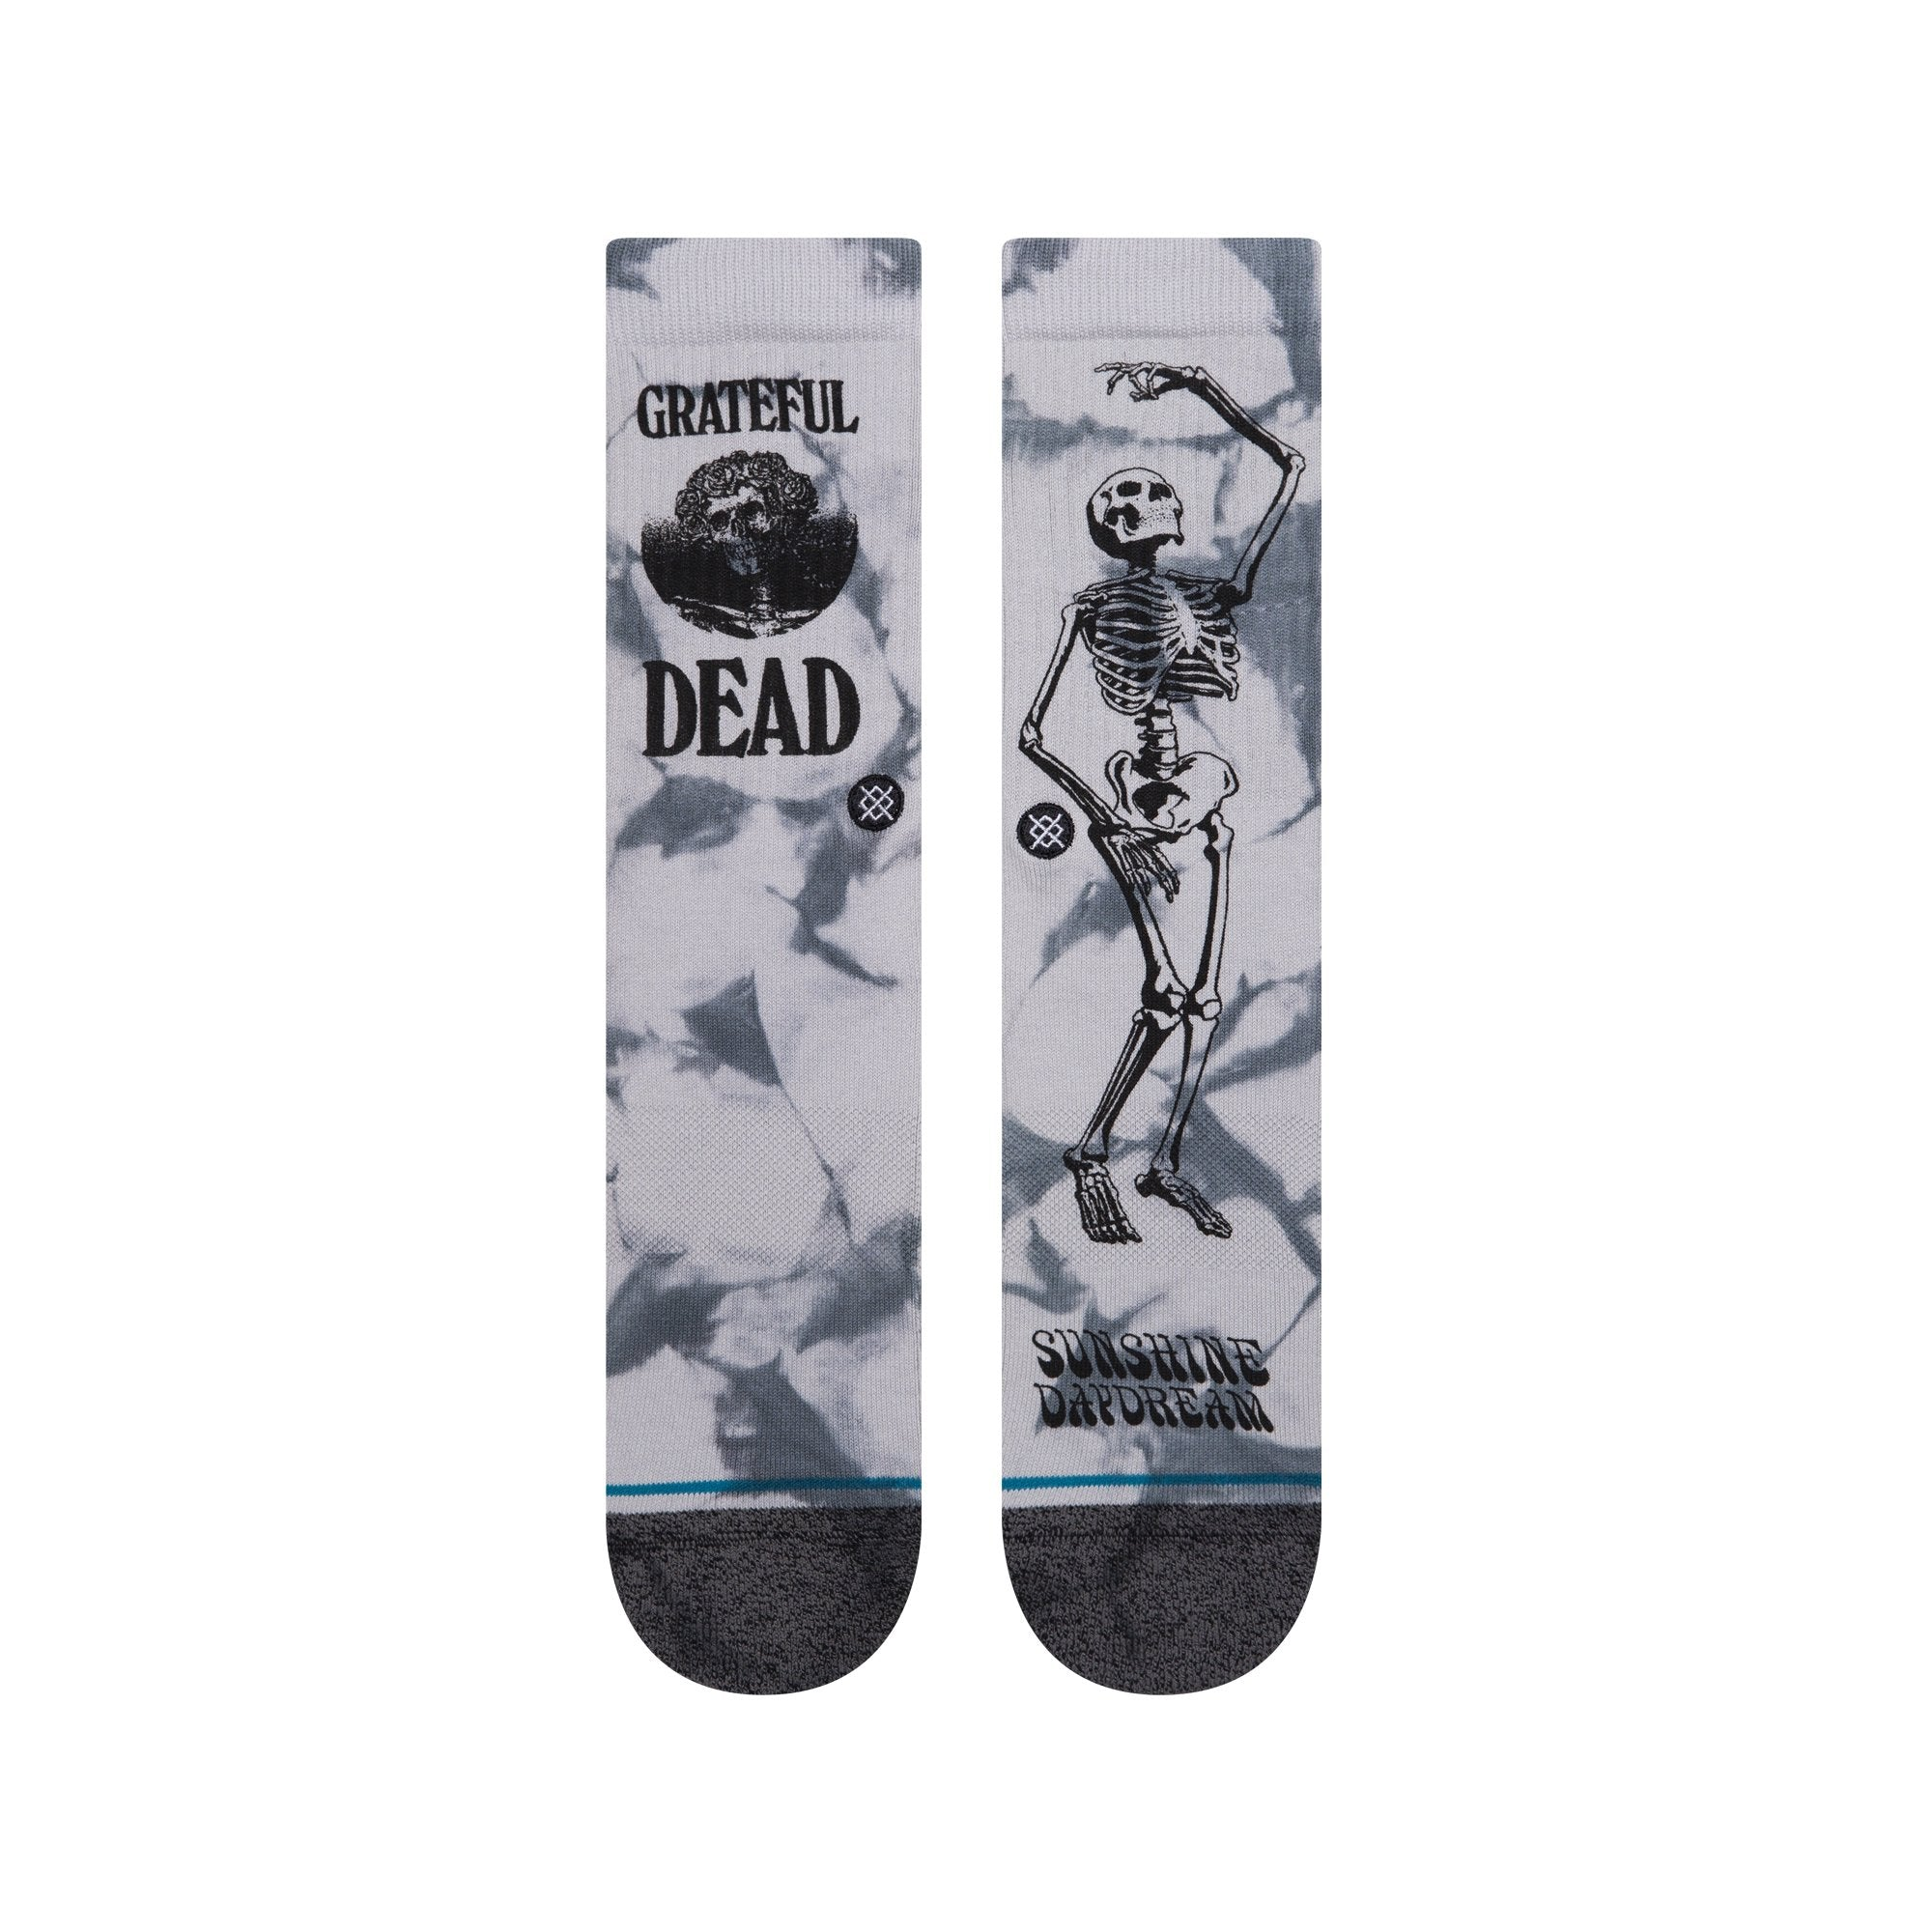 Stance X Grateful Dead Good Ol Grateful Dead Crew Socks